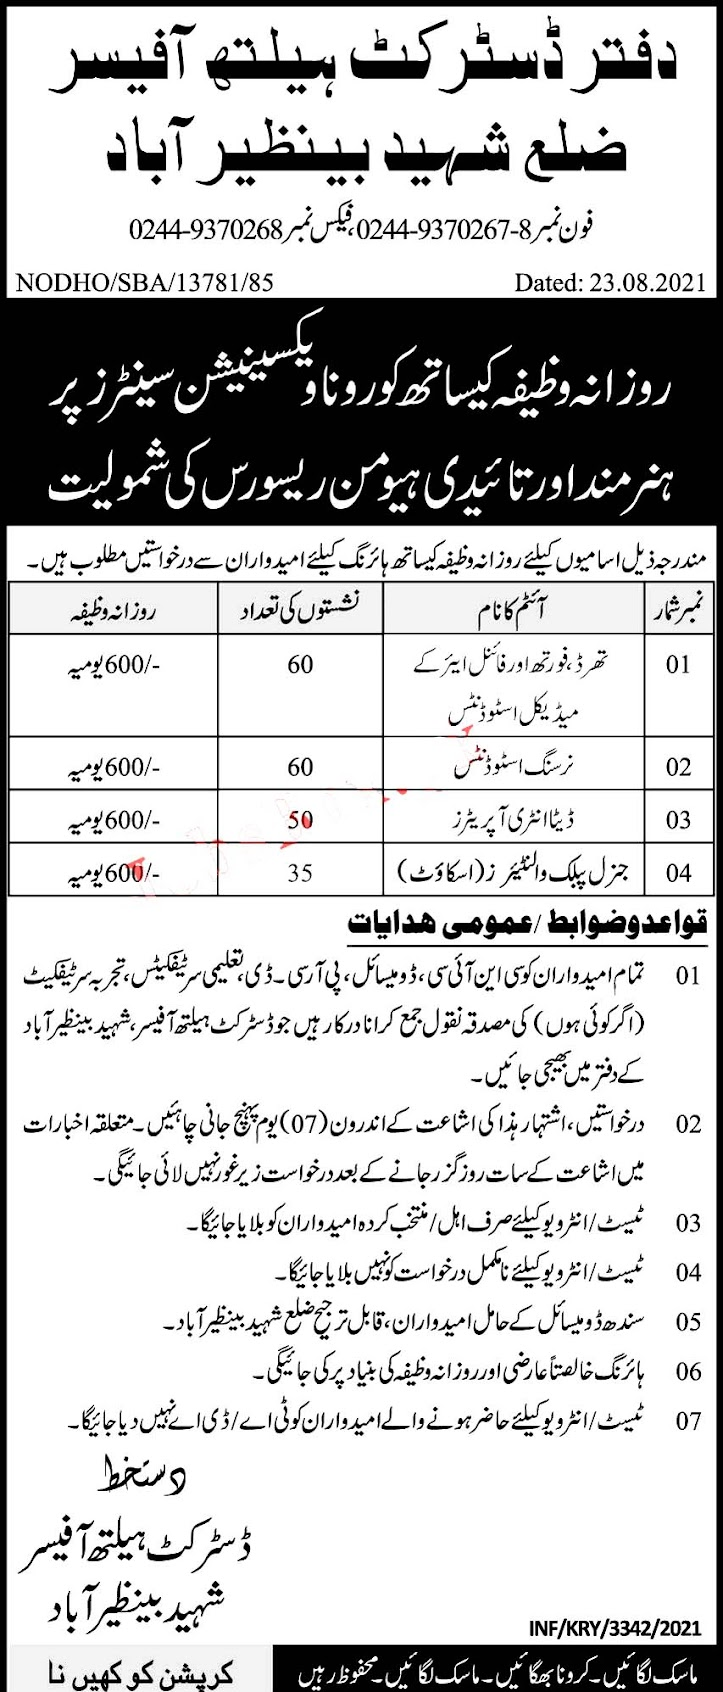 Sindh Government will announced 60000 Latest Jobs in Health department in (H-R )Corona vaccination center Pakistan